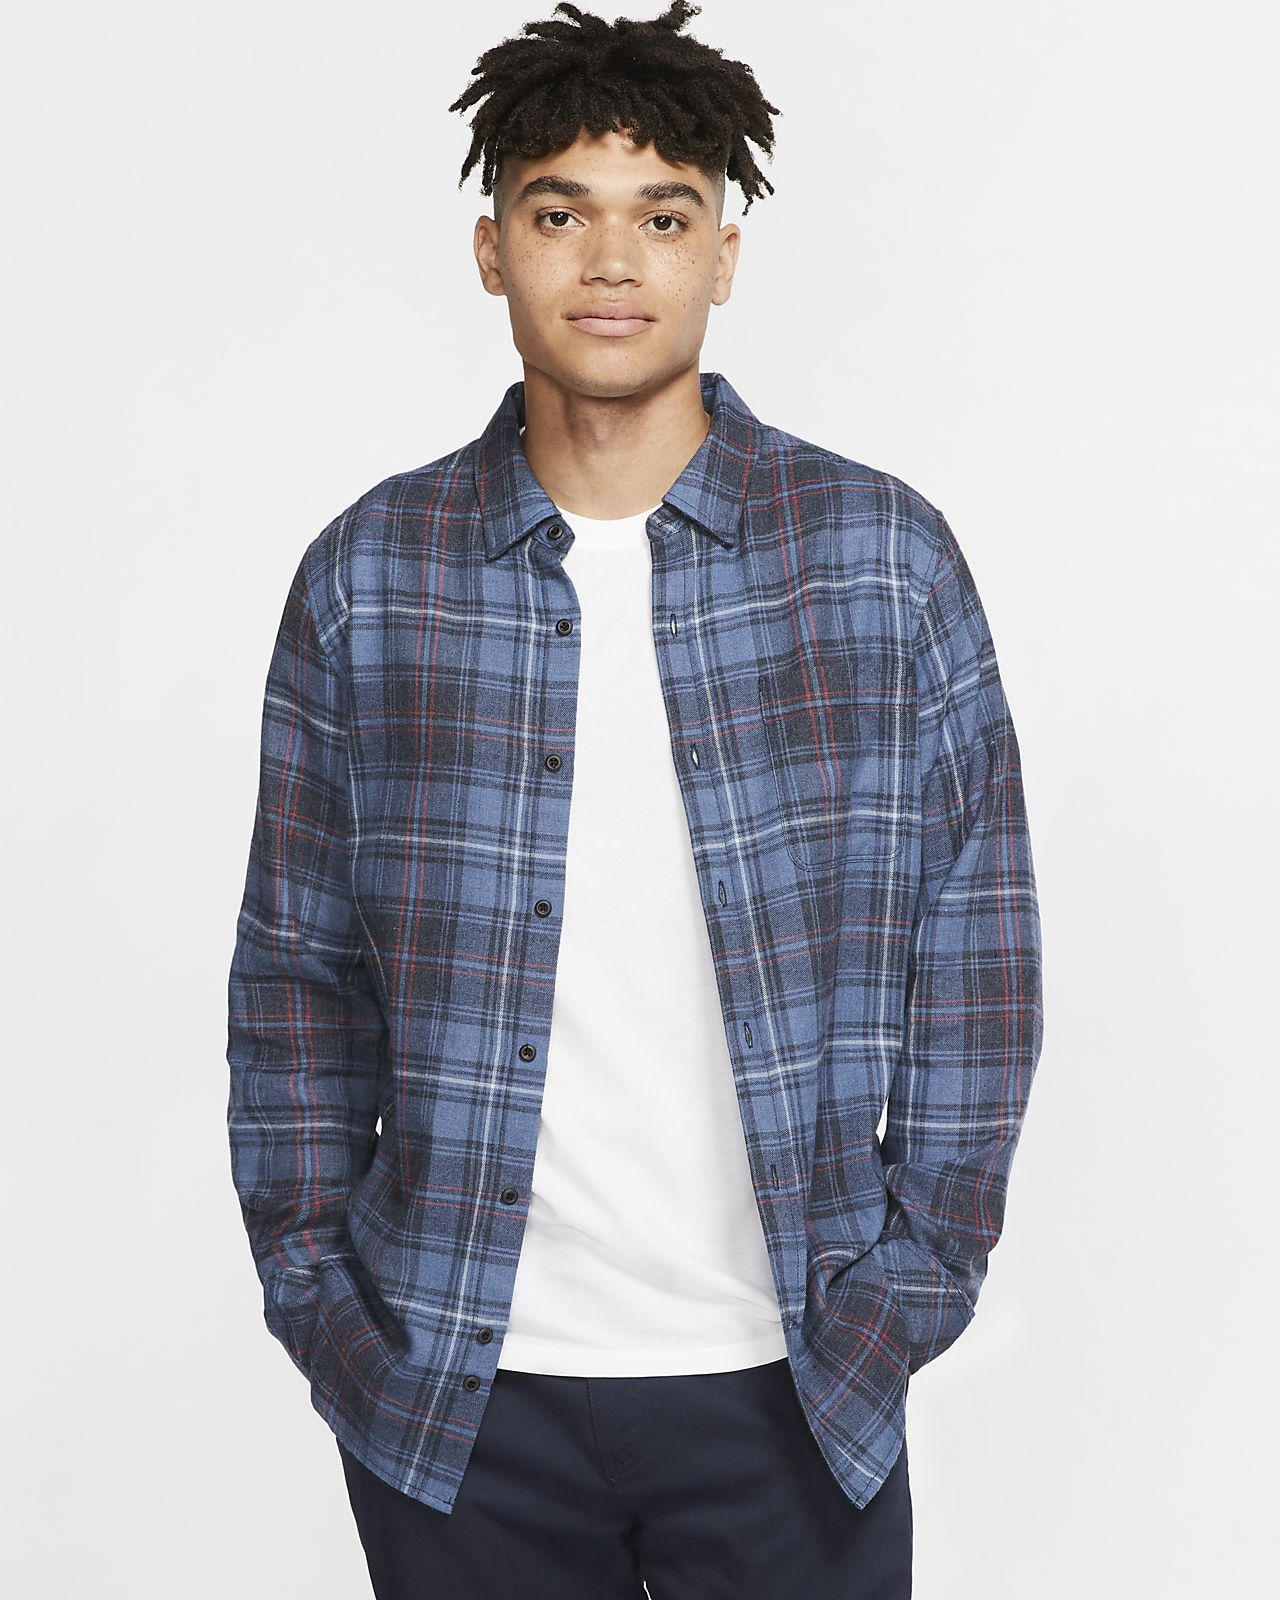 Maglia a manica lunga Hurley Vedder Washed - Uomo